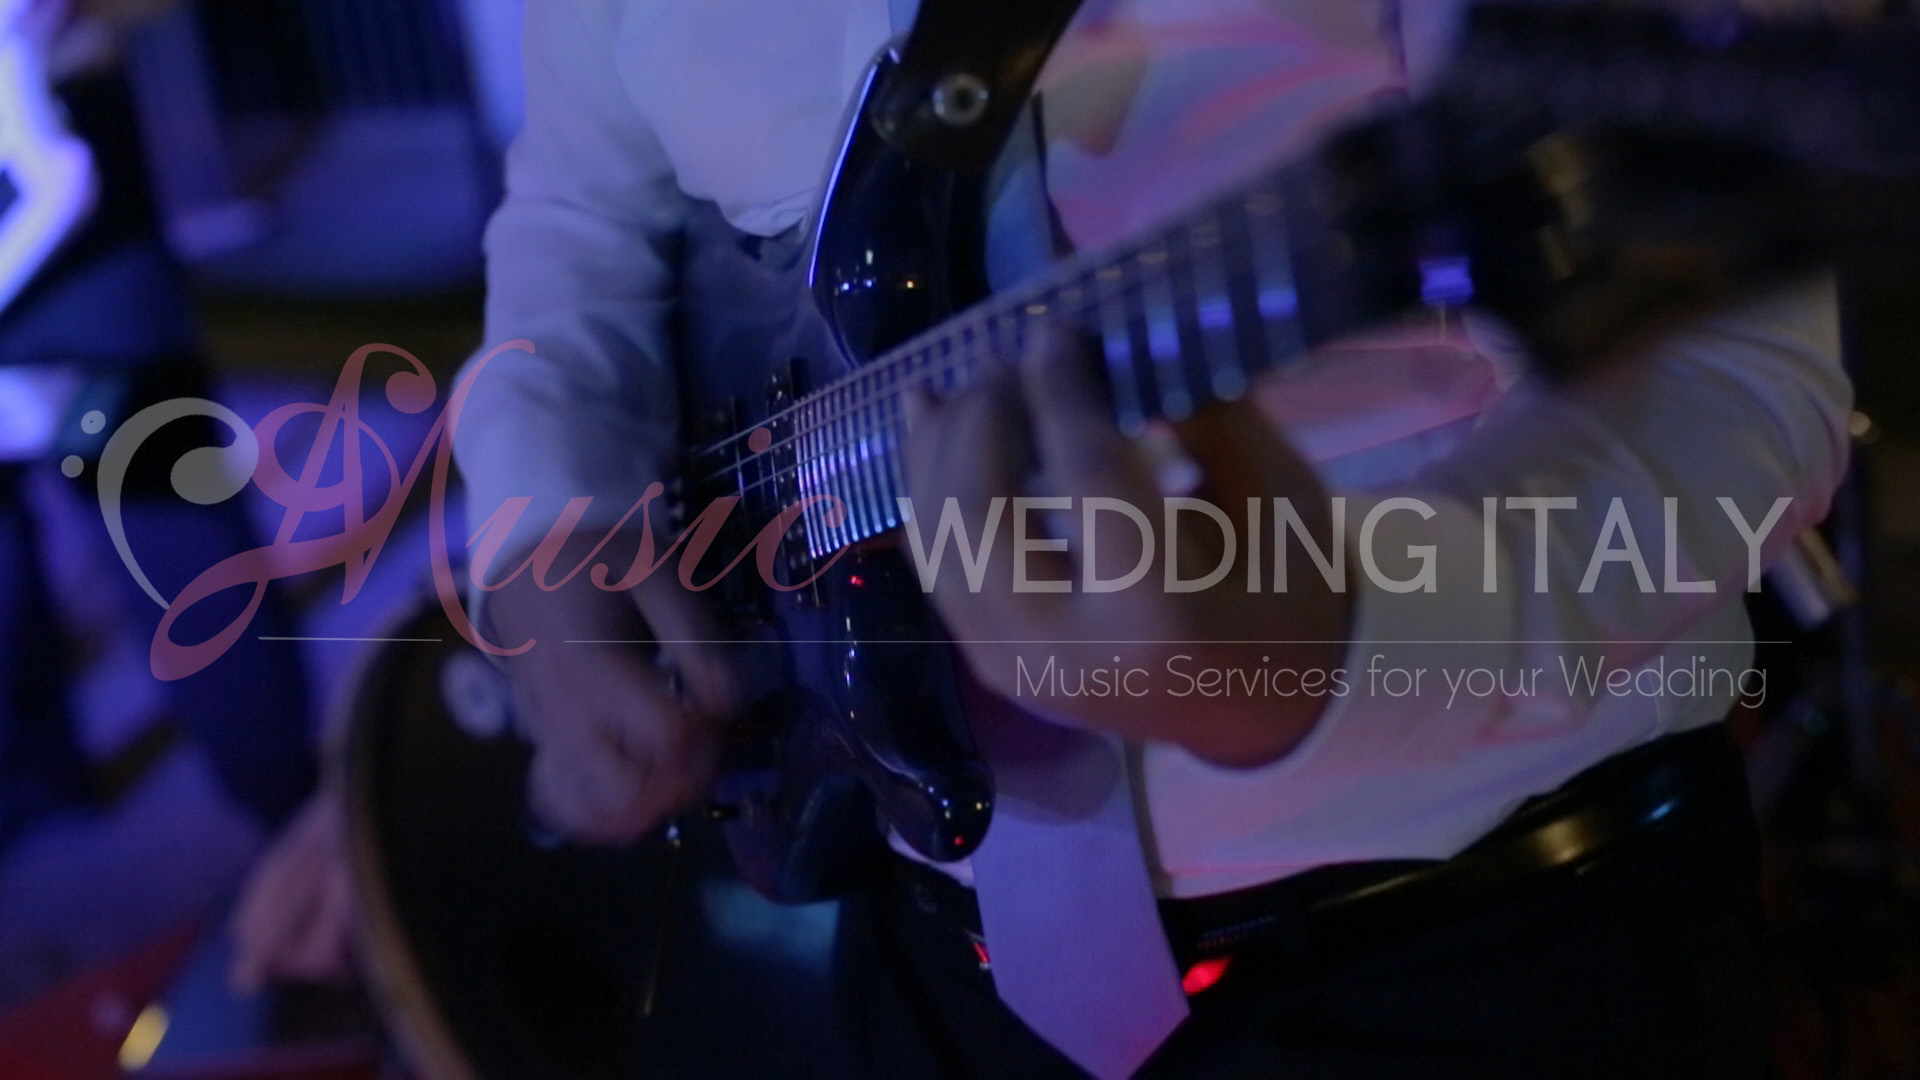 Revival dance funk rock band for your wedding reception all over Italy